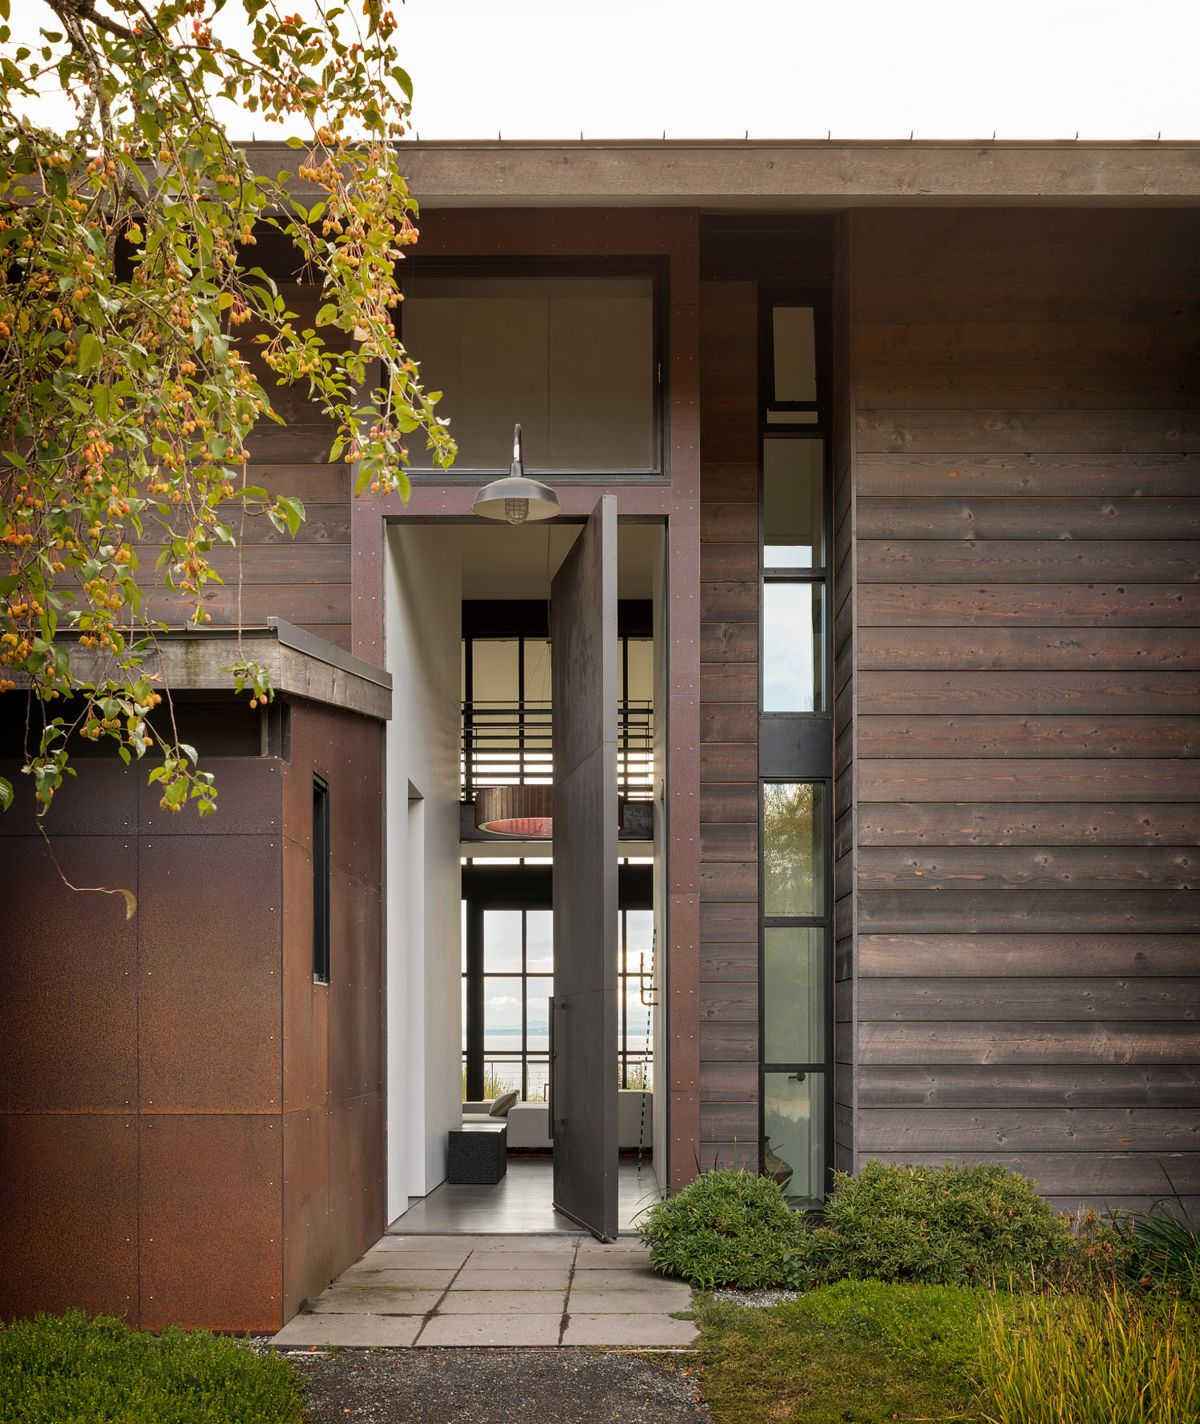 Its exterior done with dark wood and aged metal blends the landscape, while lots of windows bring much light and views in